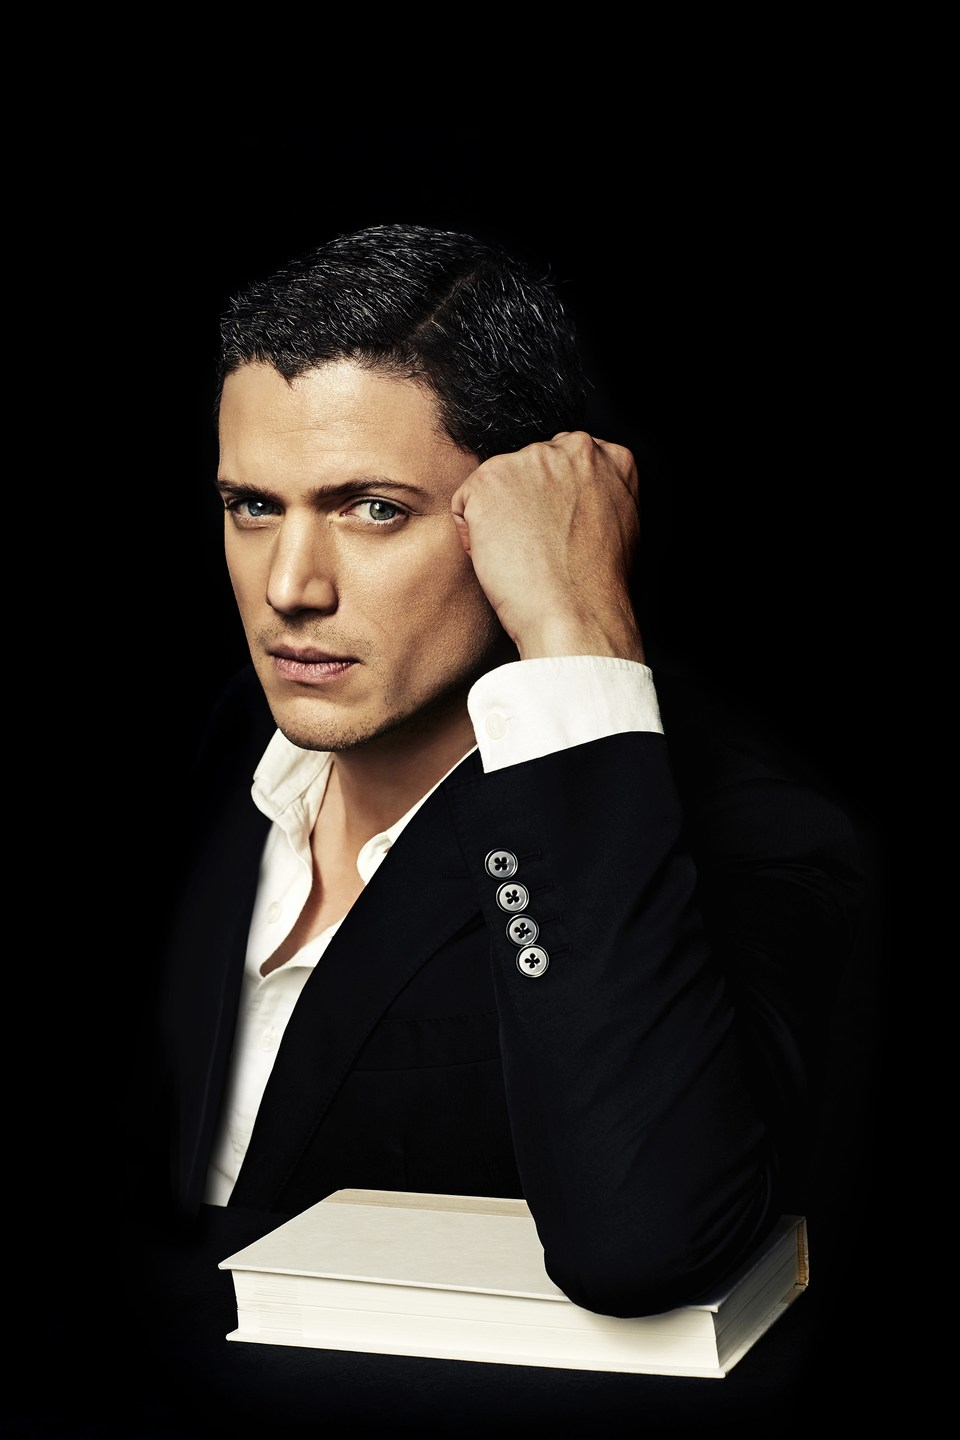 WENTWORTH MILLER GAY OR STRAIGHT